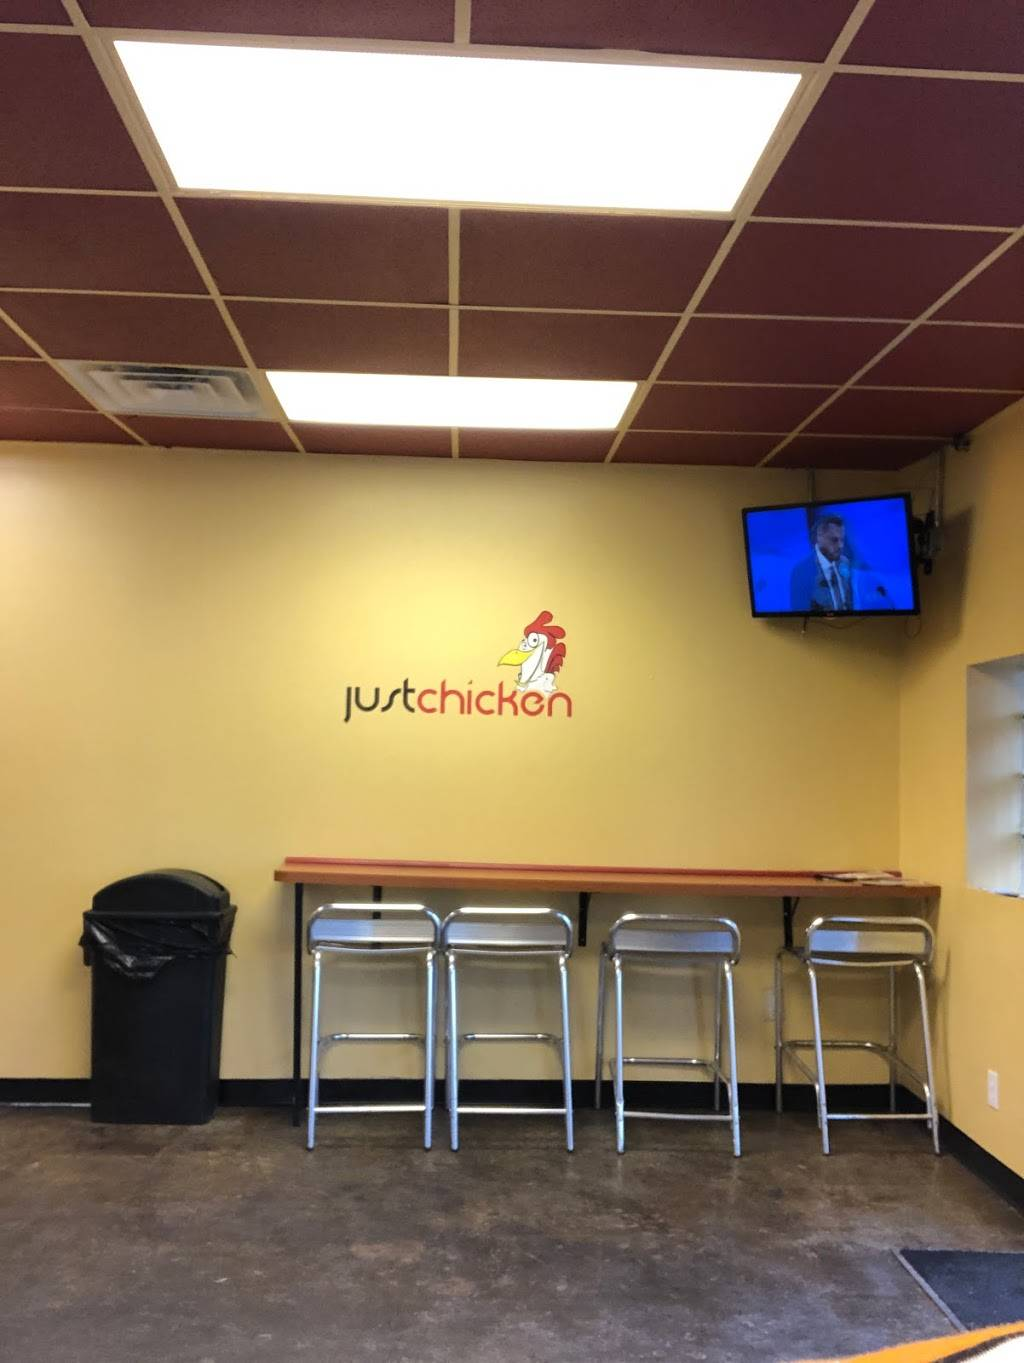 Just Chicken | restaurant | 5942 Delmar Blvd, St. Louis, MO 63112, USA | 3147263303 OR +1 314-726-3303